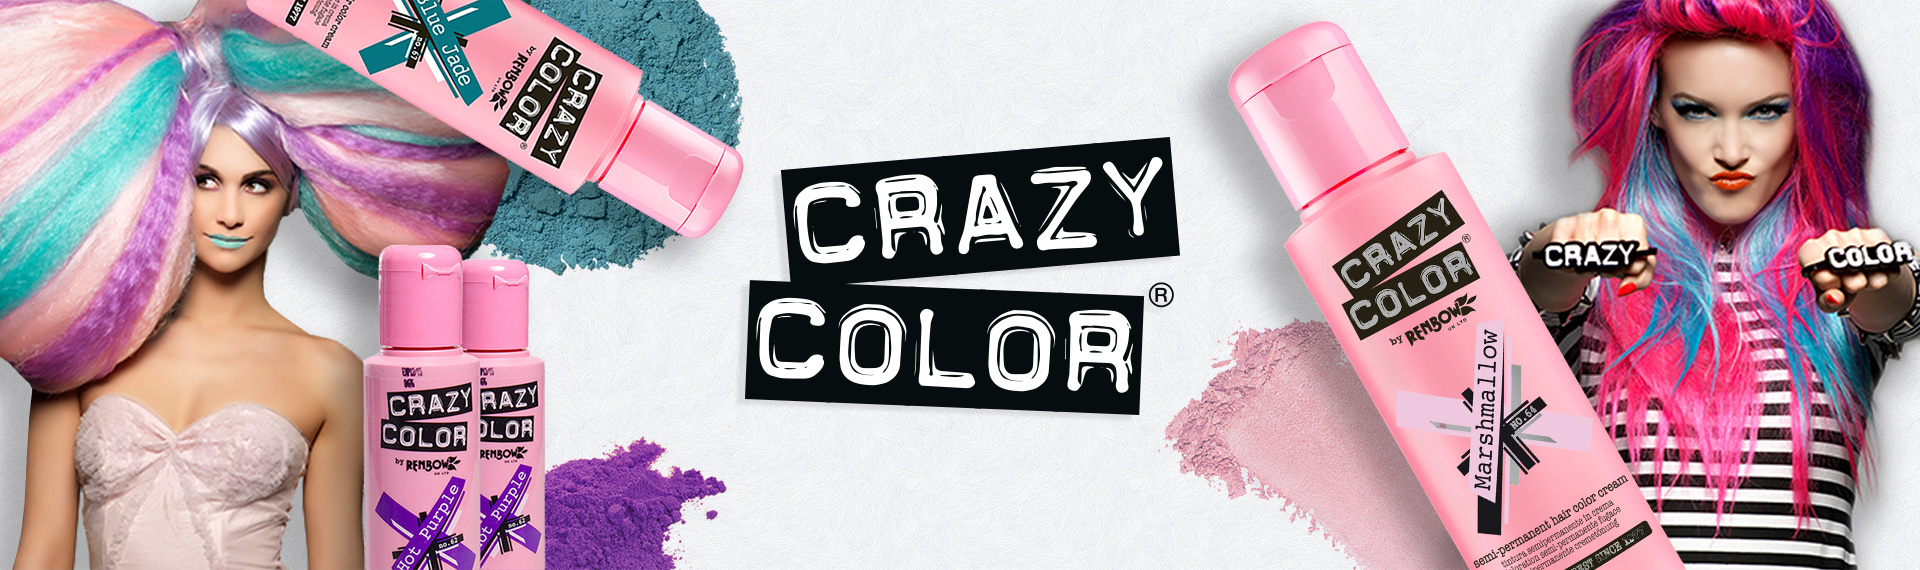 Crazy Color – Avita Concept